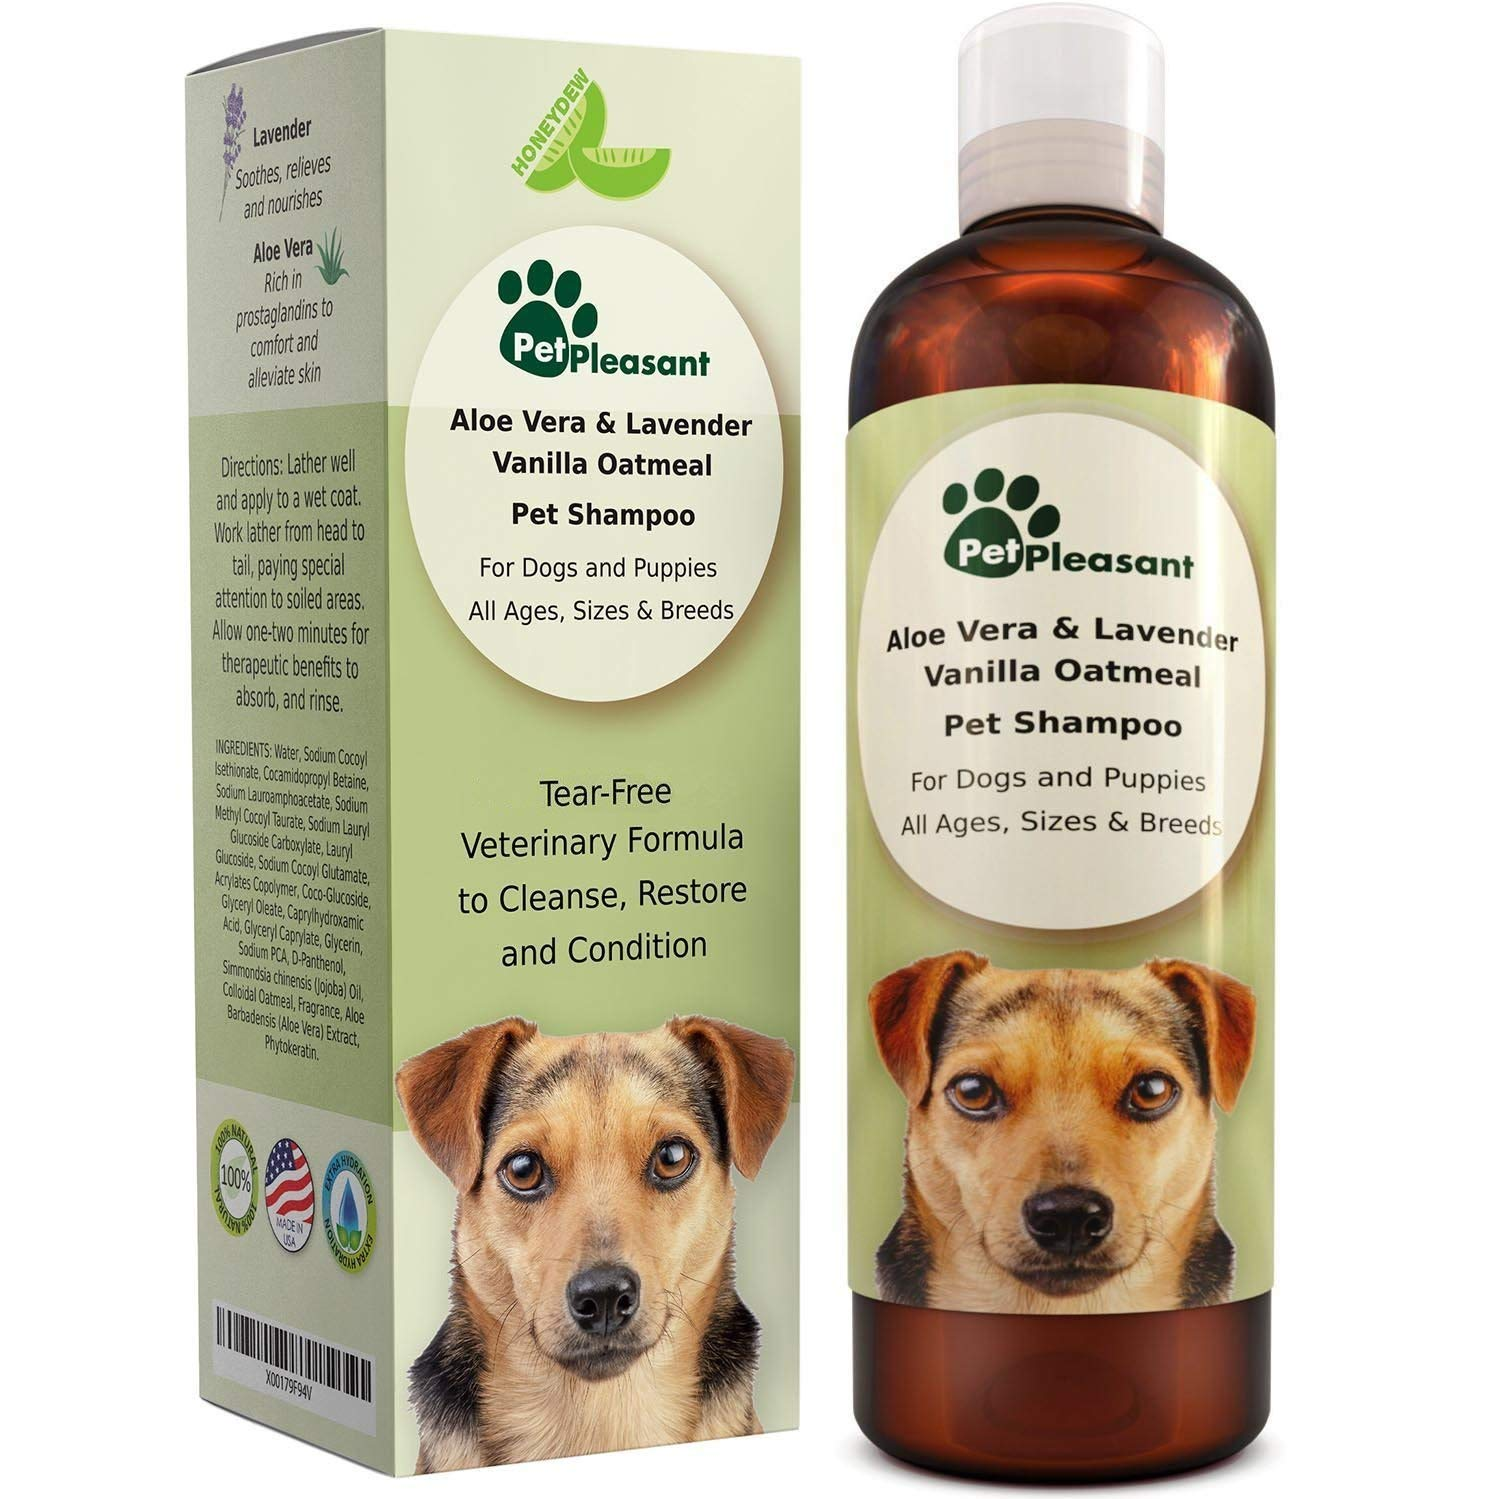 Honeydew Vanilla Oatmeal Dog Shampoo with Aloe Vera Review by www.puppyurl.com